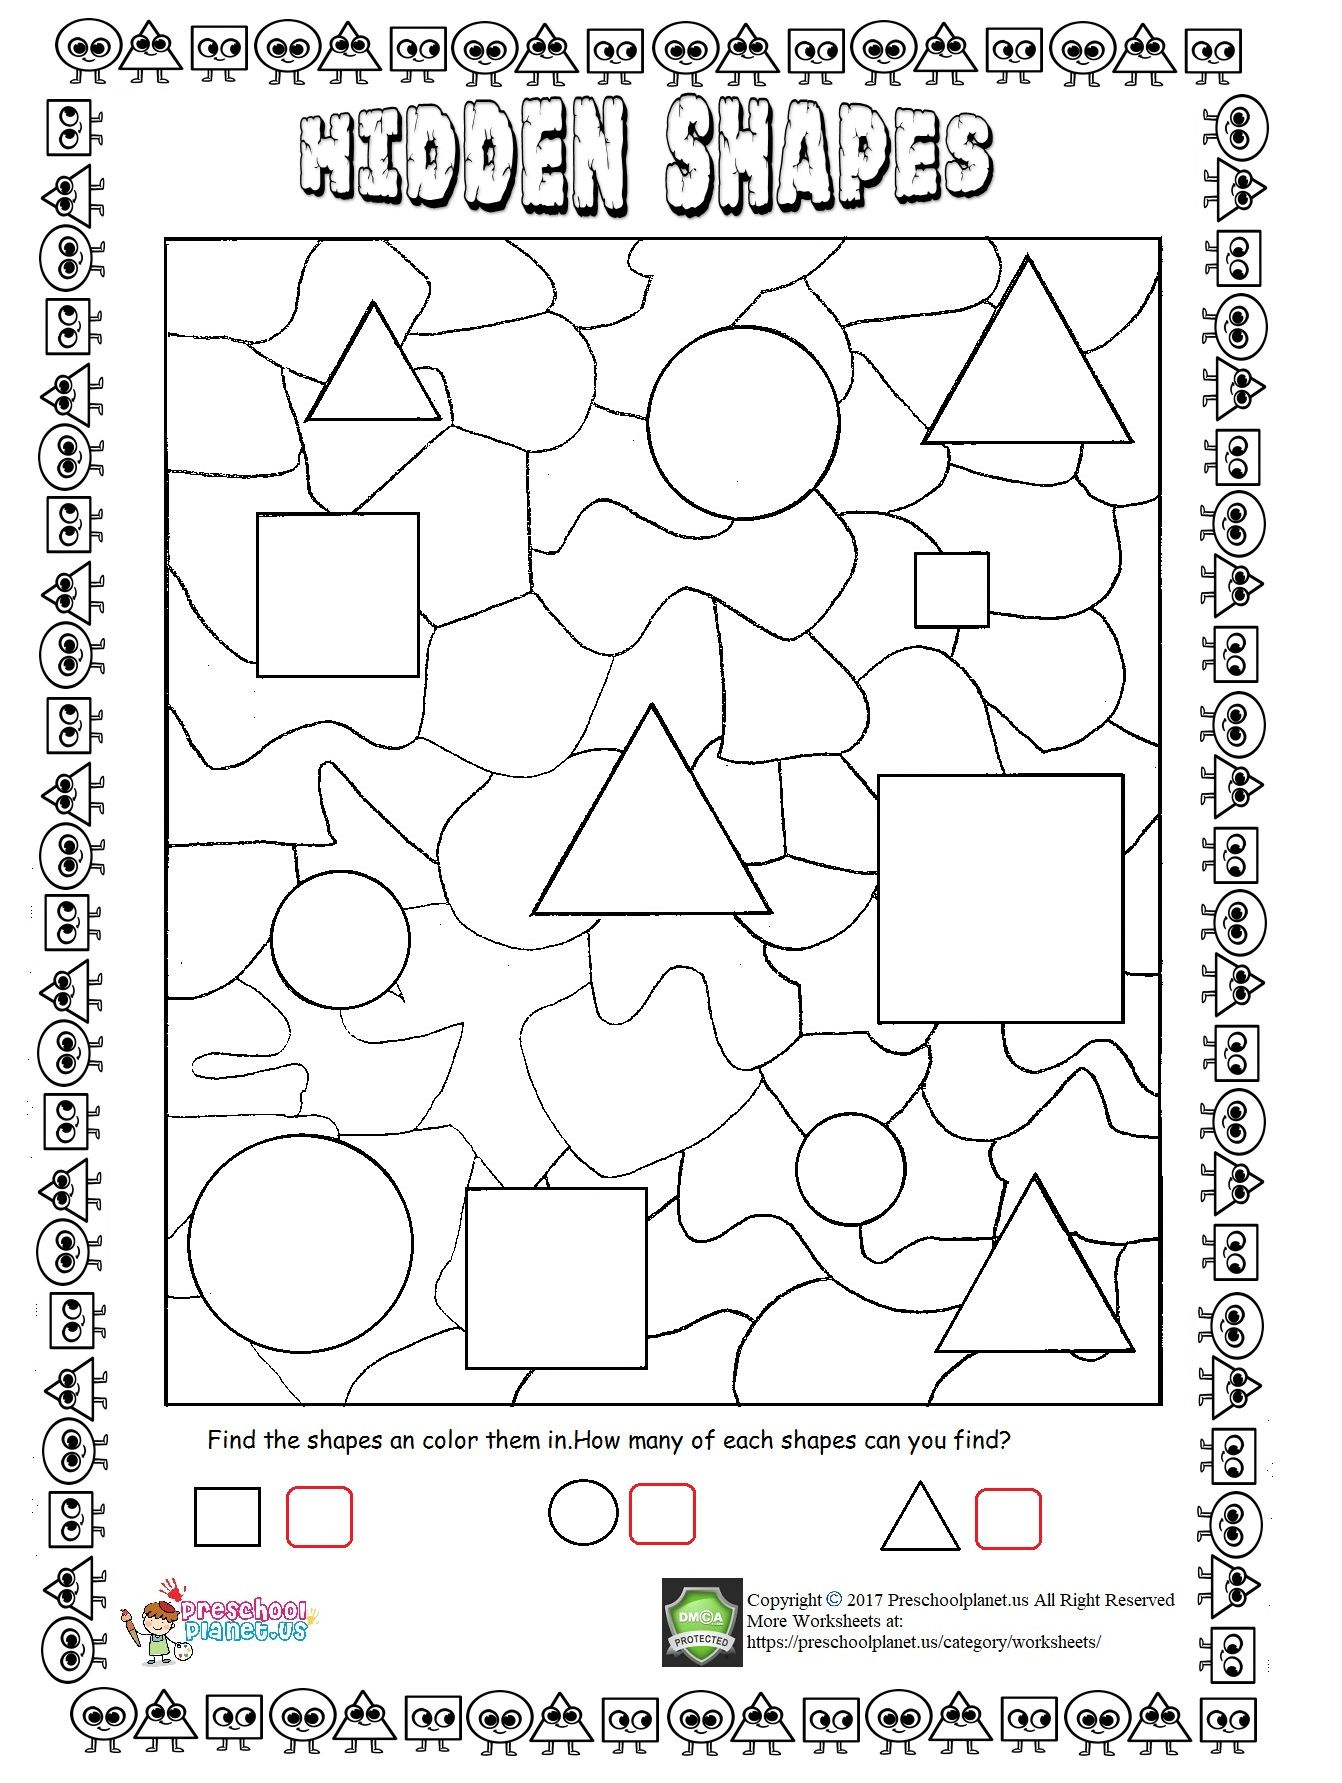 Hidden Shapes Worksheet